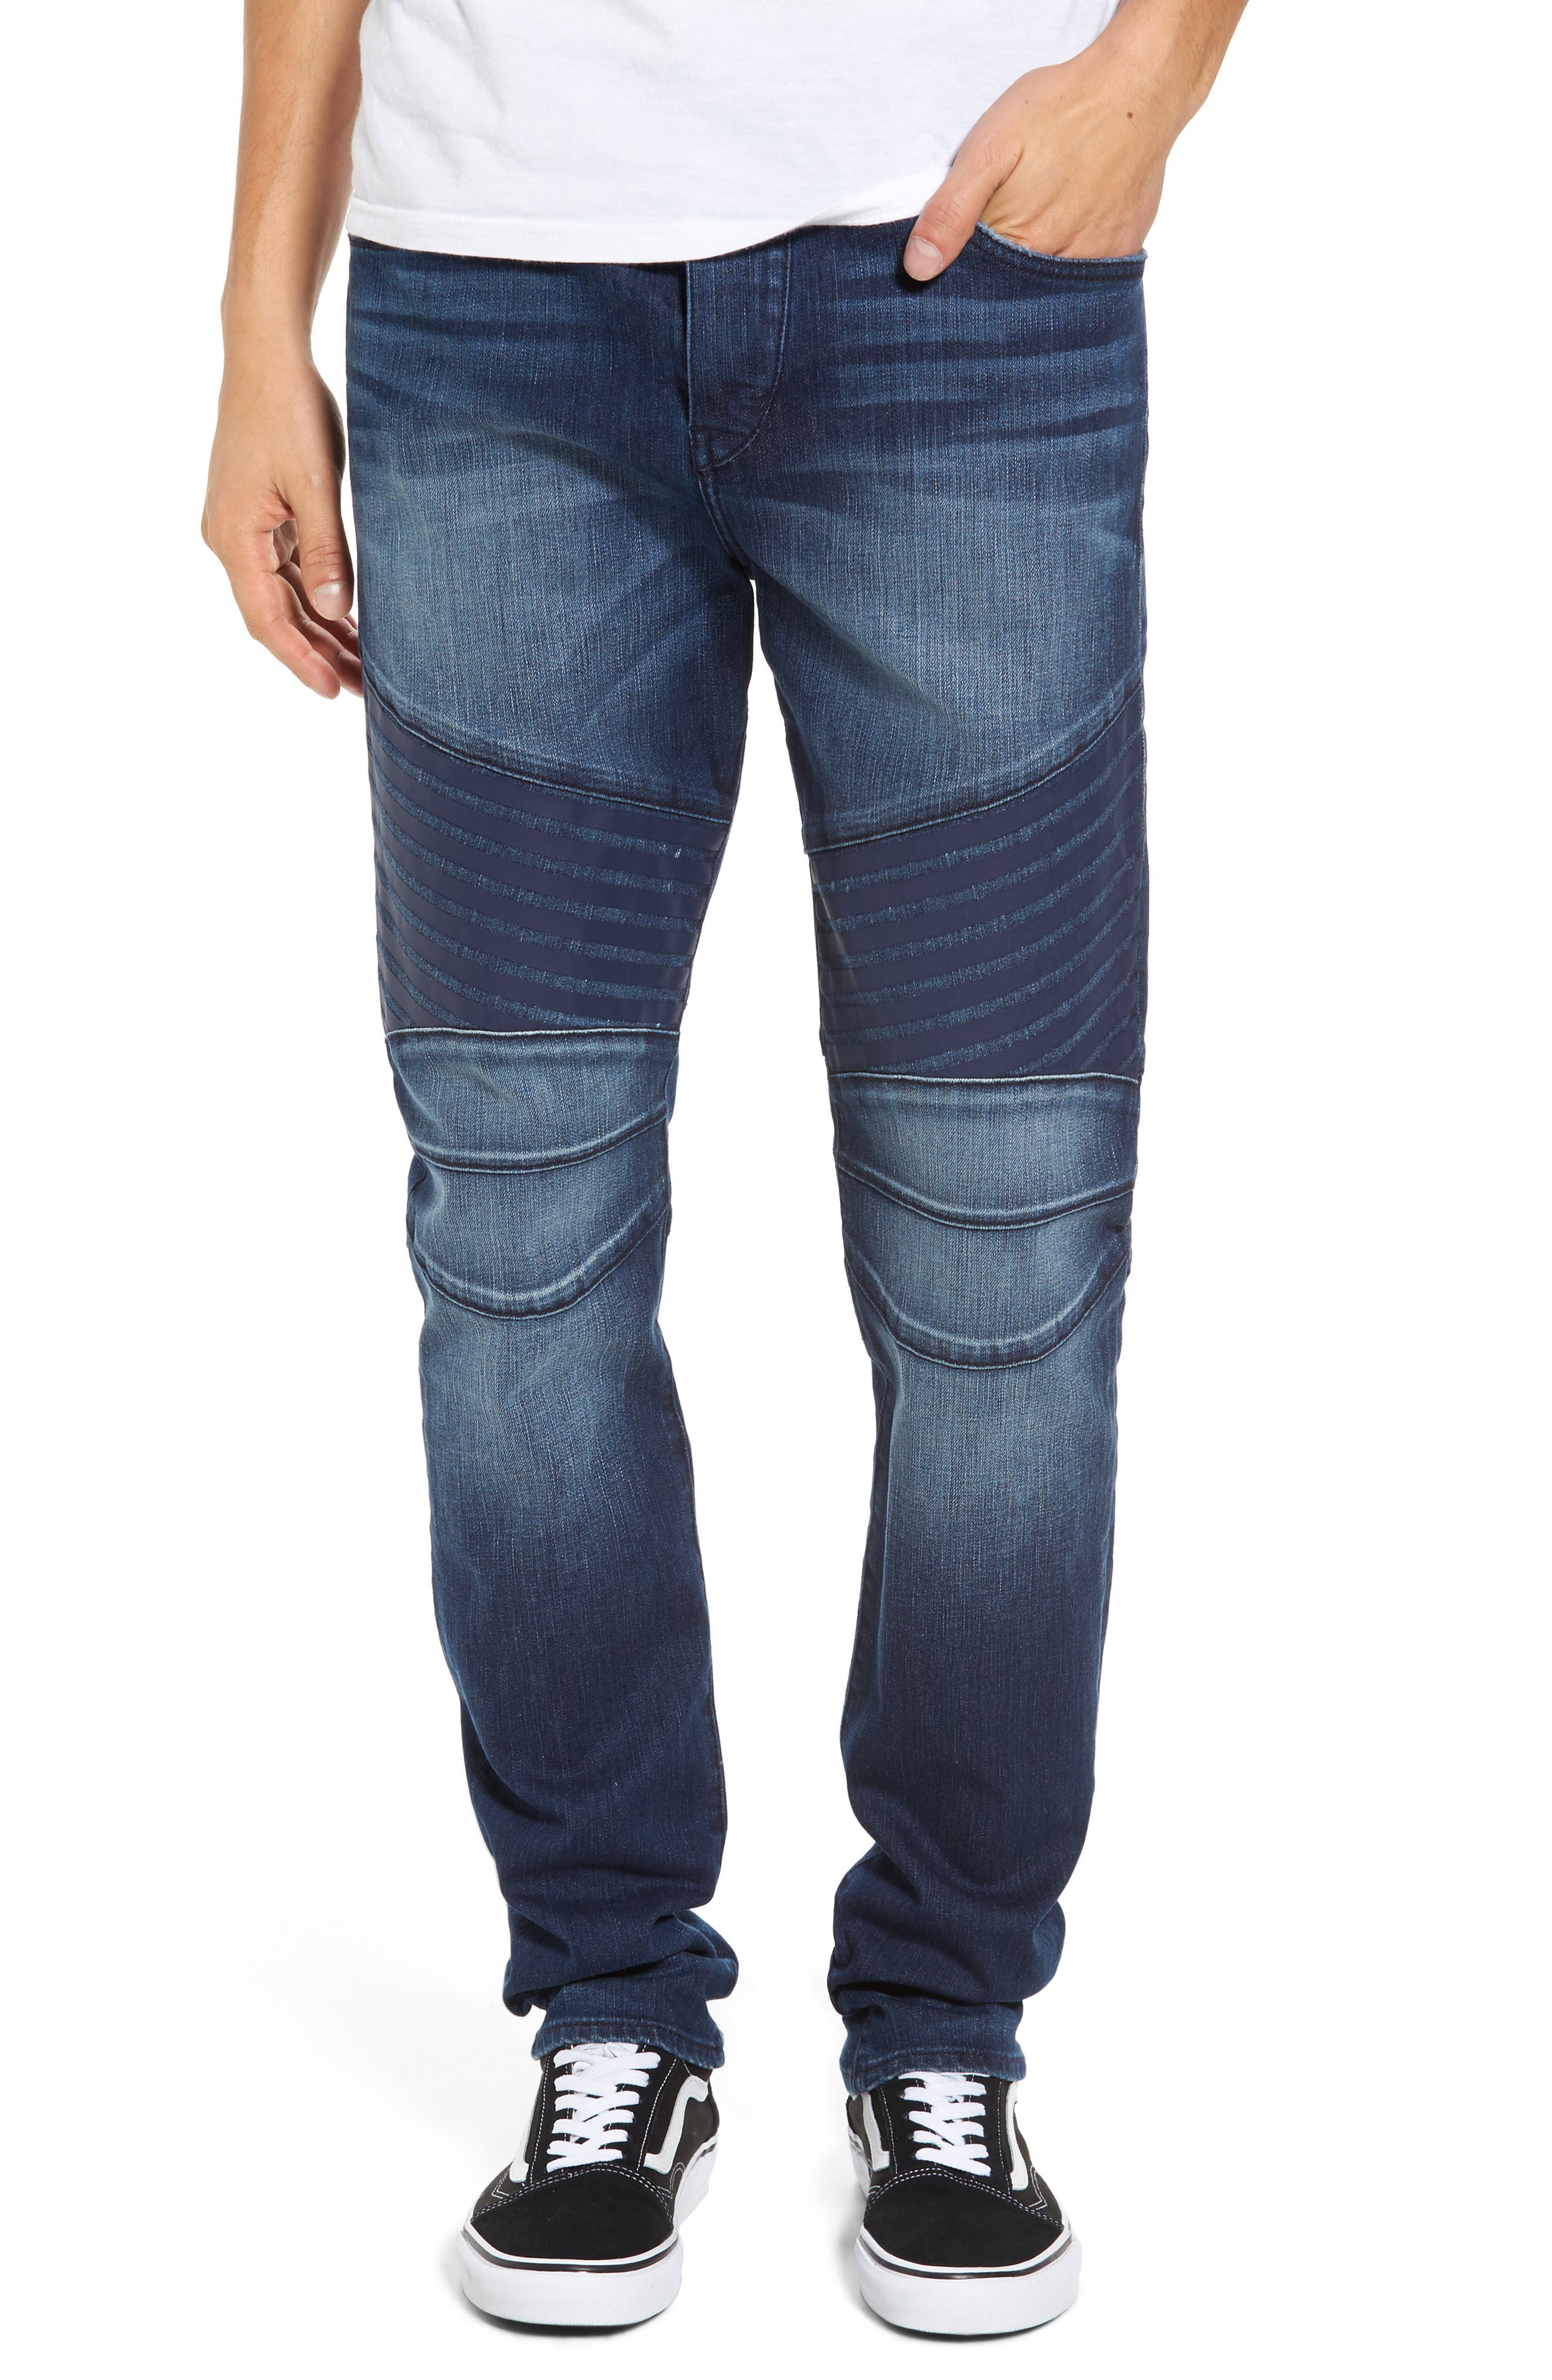 Rocco Biker Skinny Fit Jeans,                             Main thumbnail 1, color,                             401